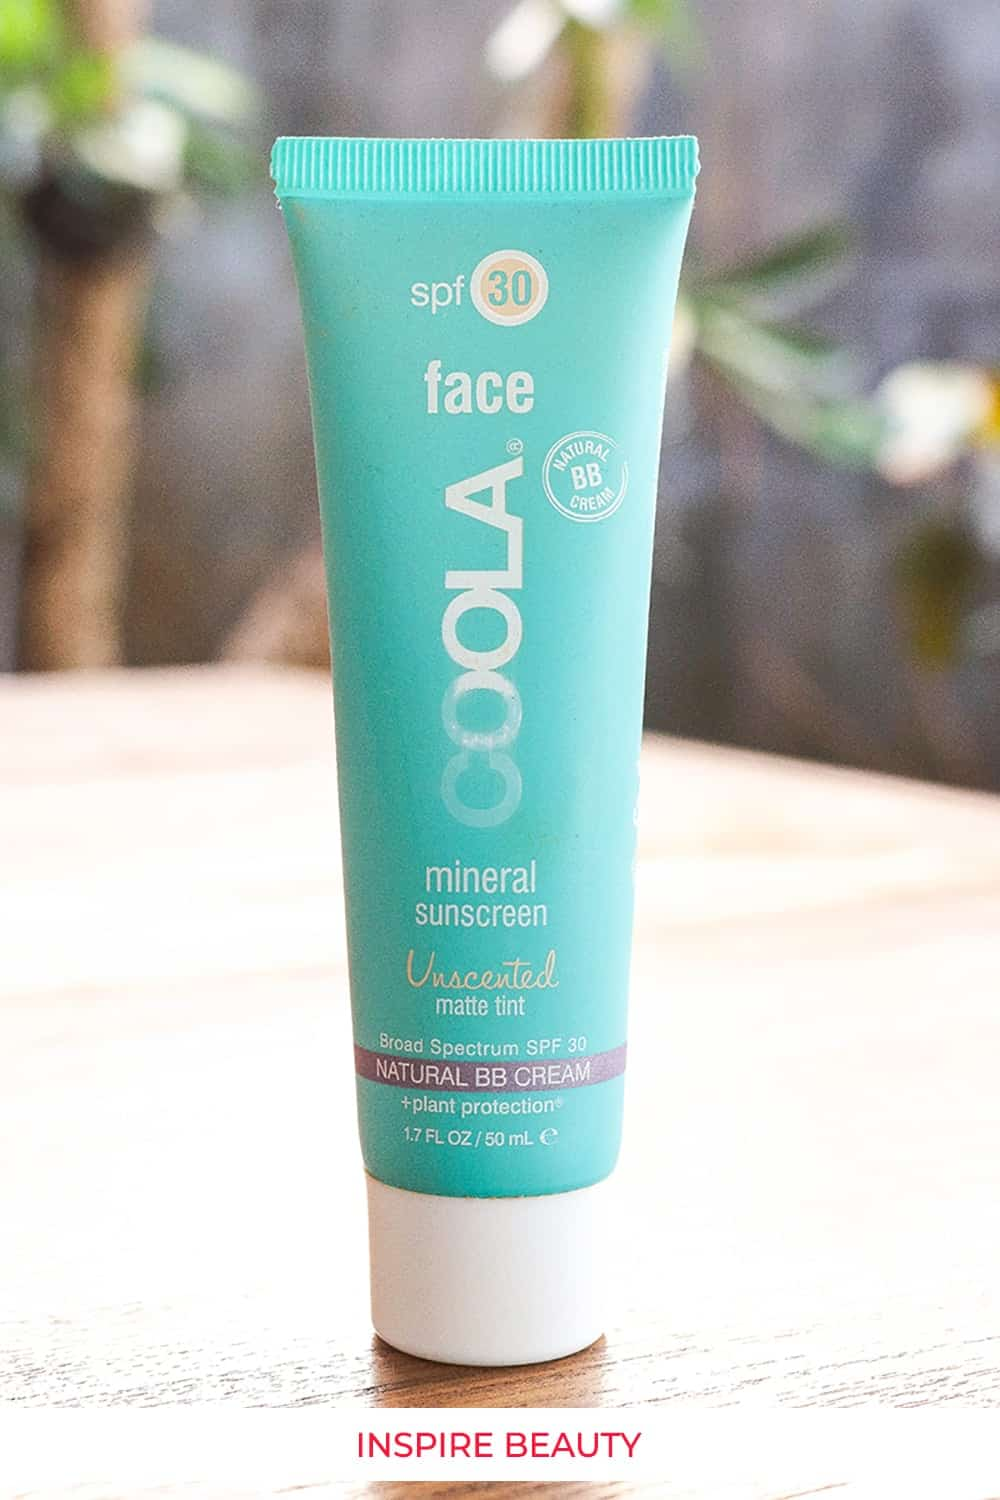 Coola tinted unscented face sunscreen review